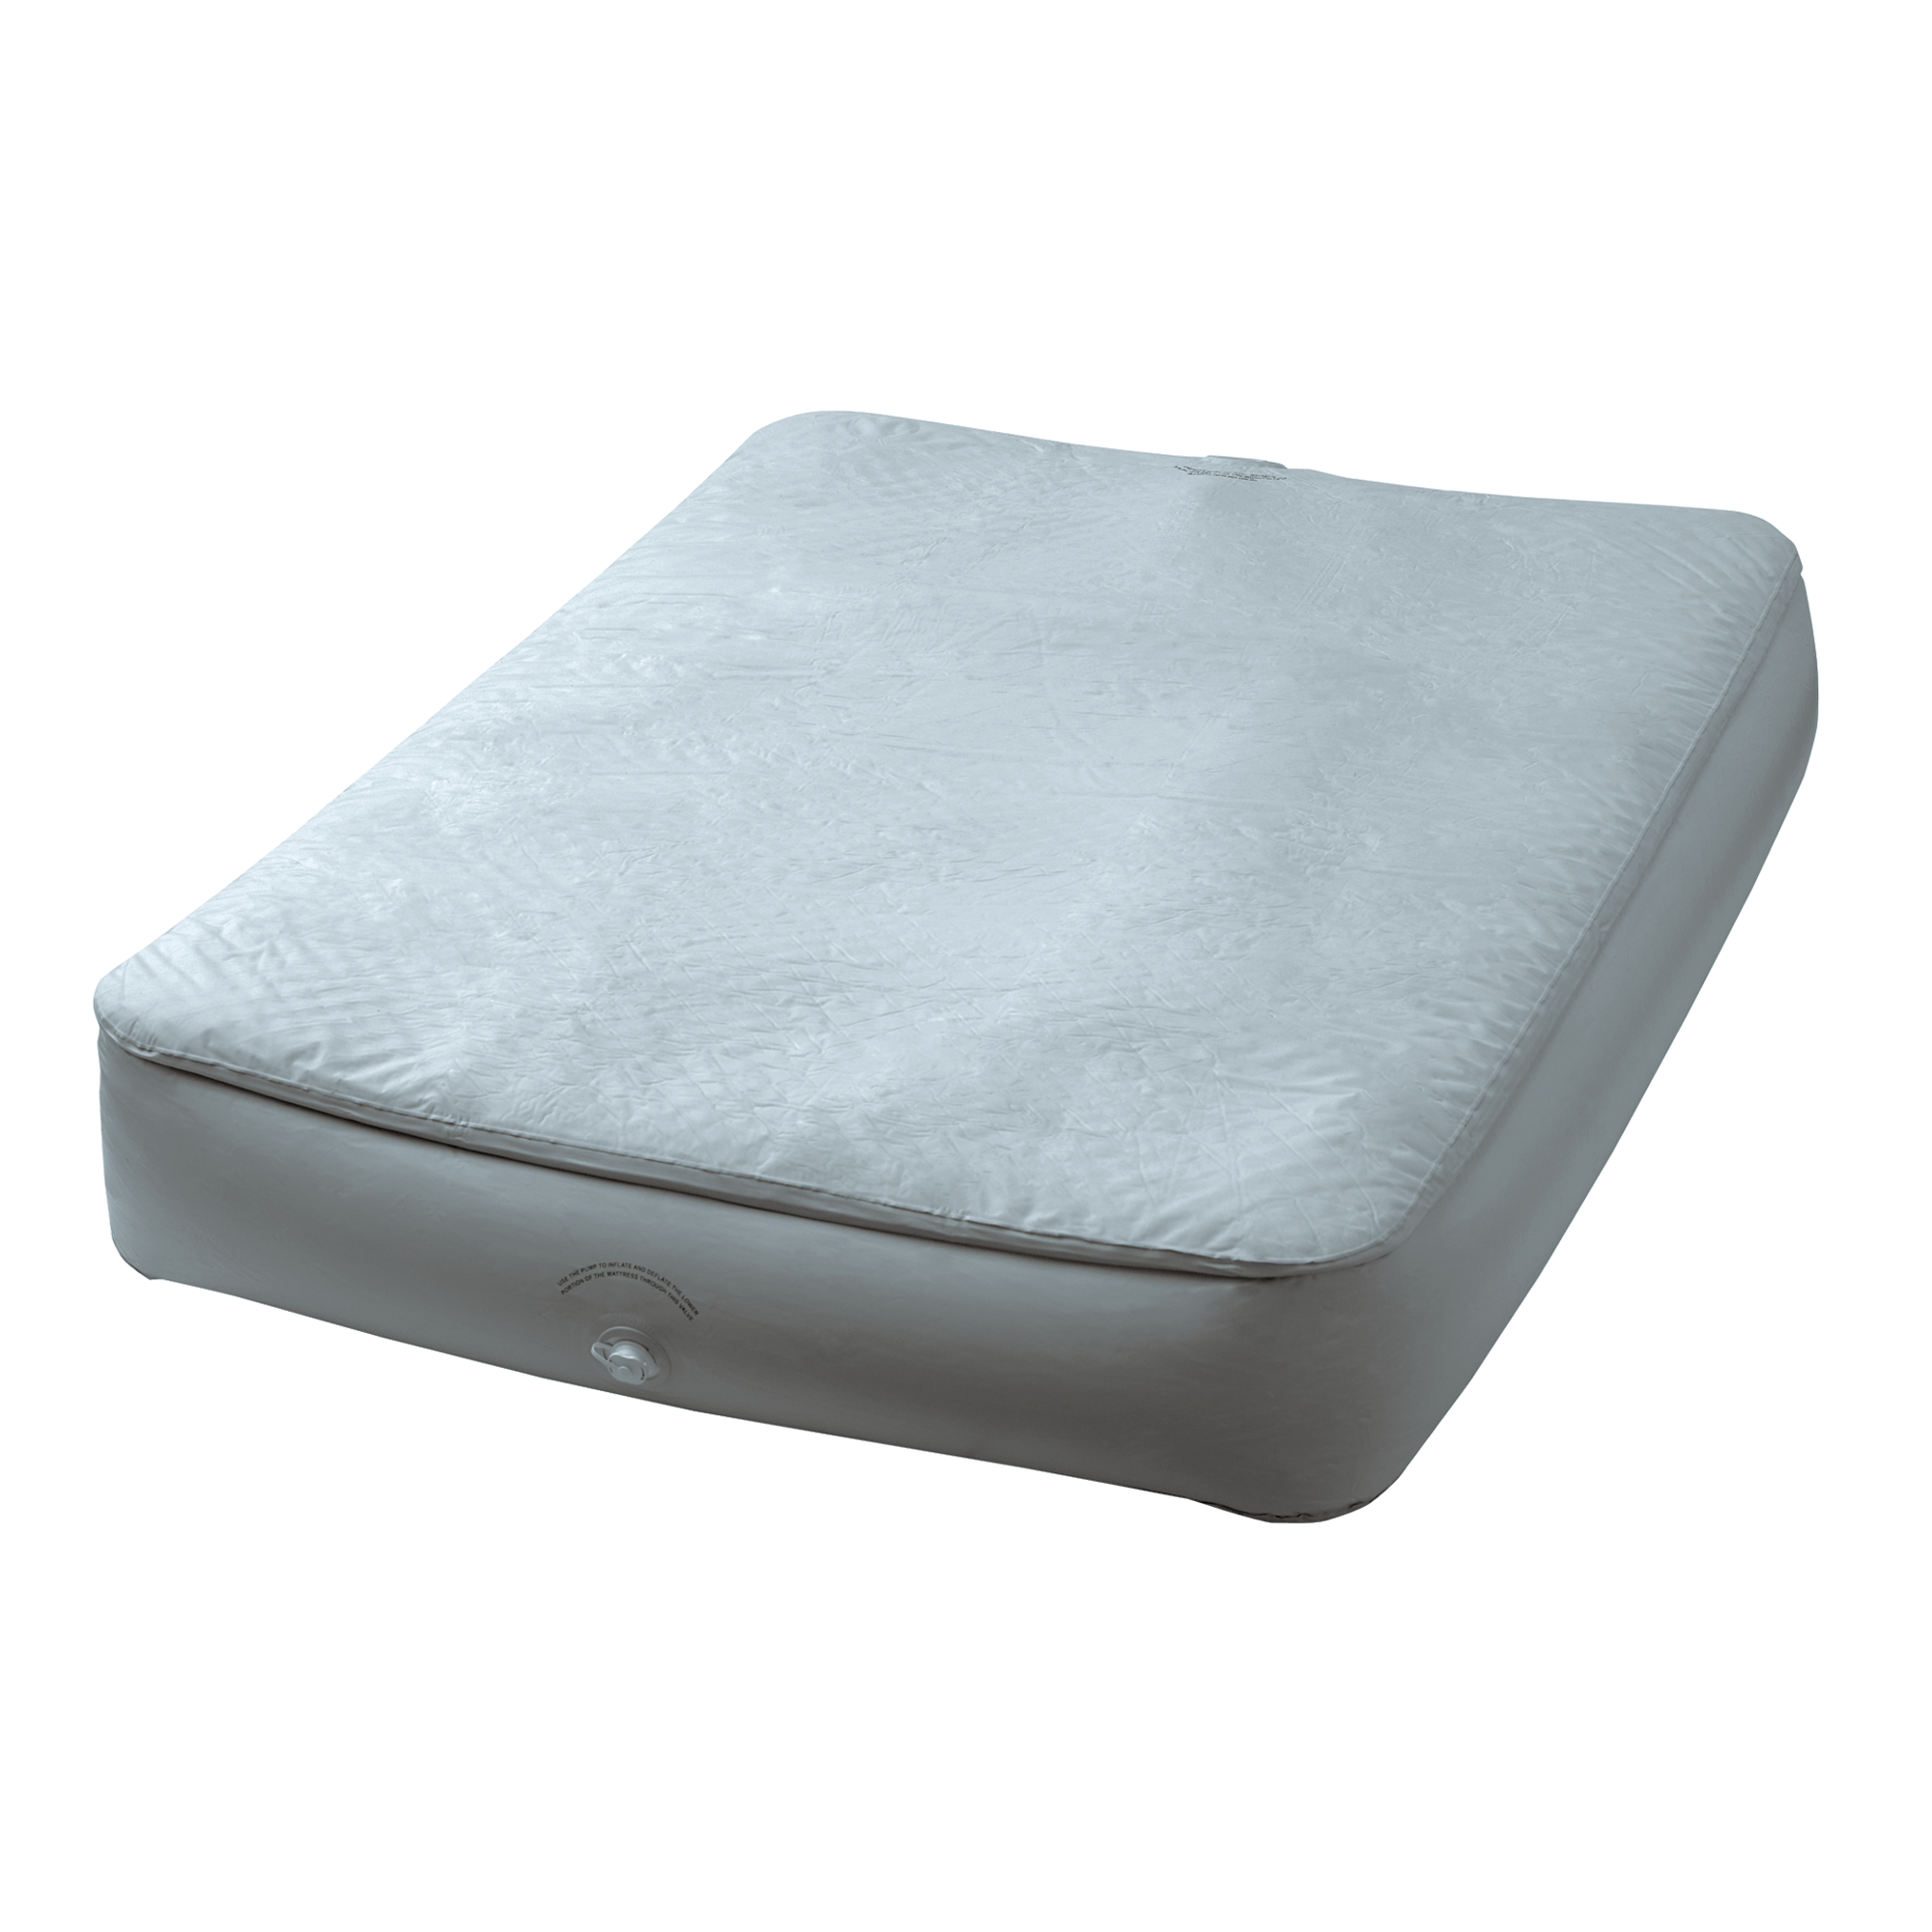 Cabana Airbed with Pump